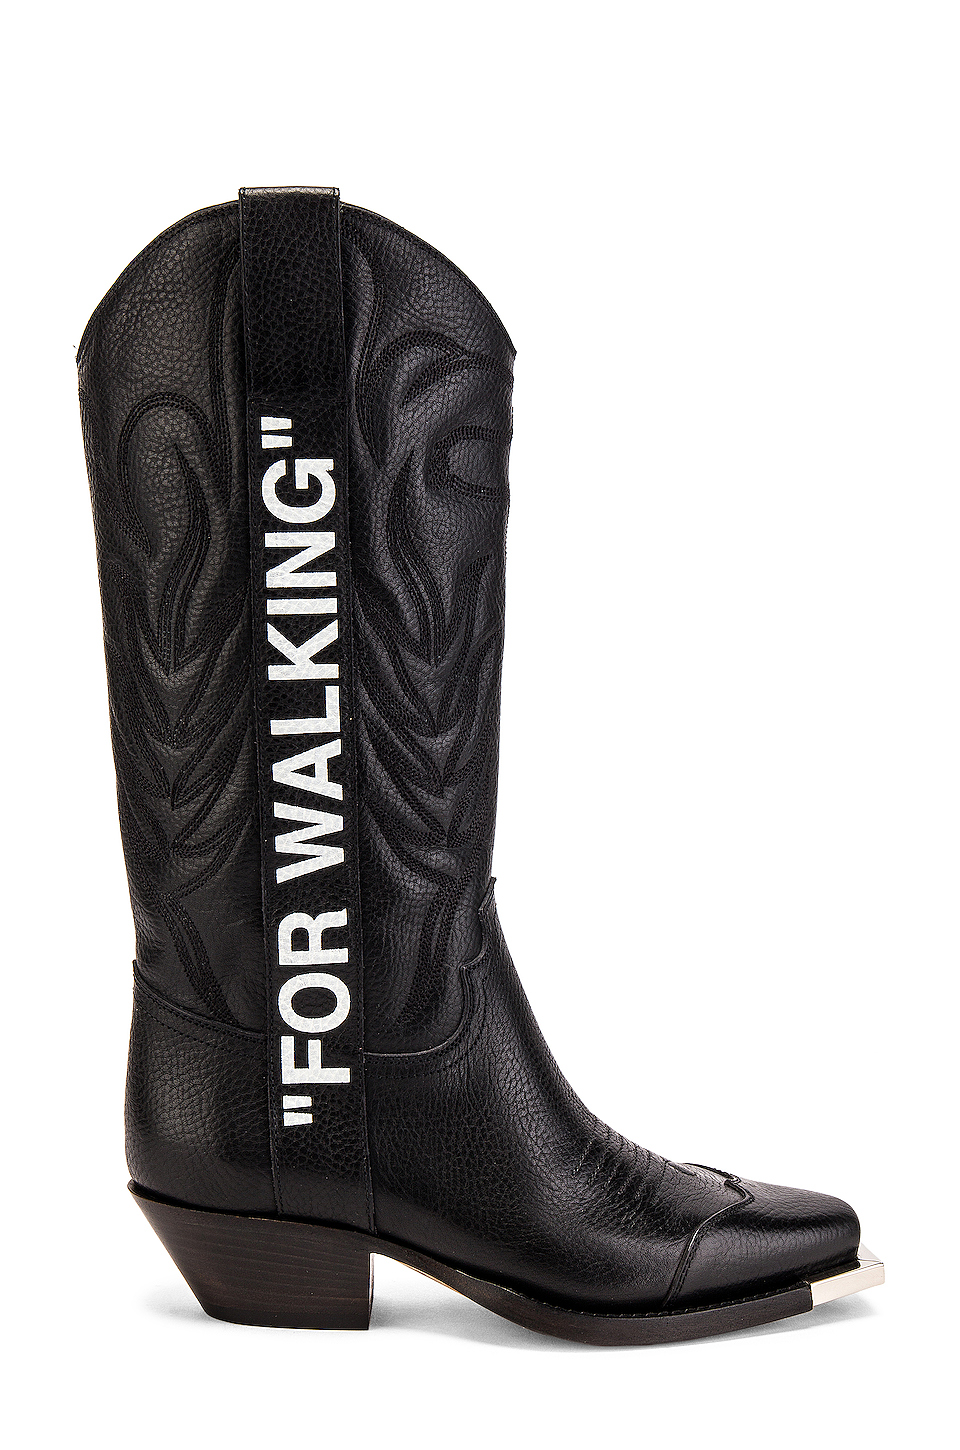 modern style running shoes most reliable For Walking Cowboy Boot, OFF-WHITE